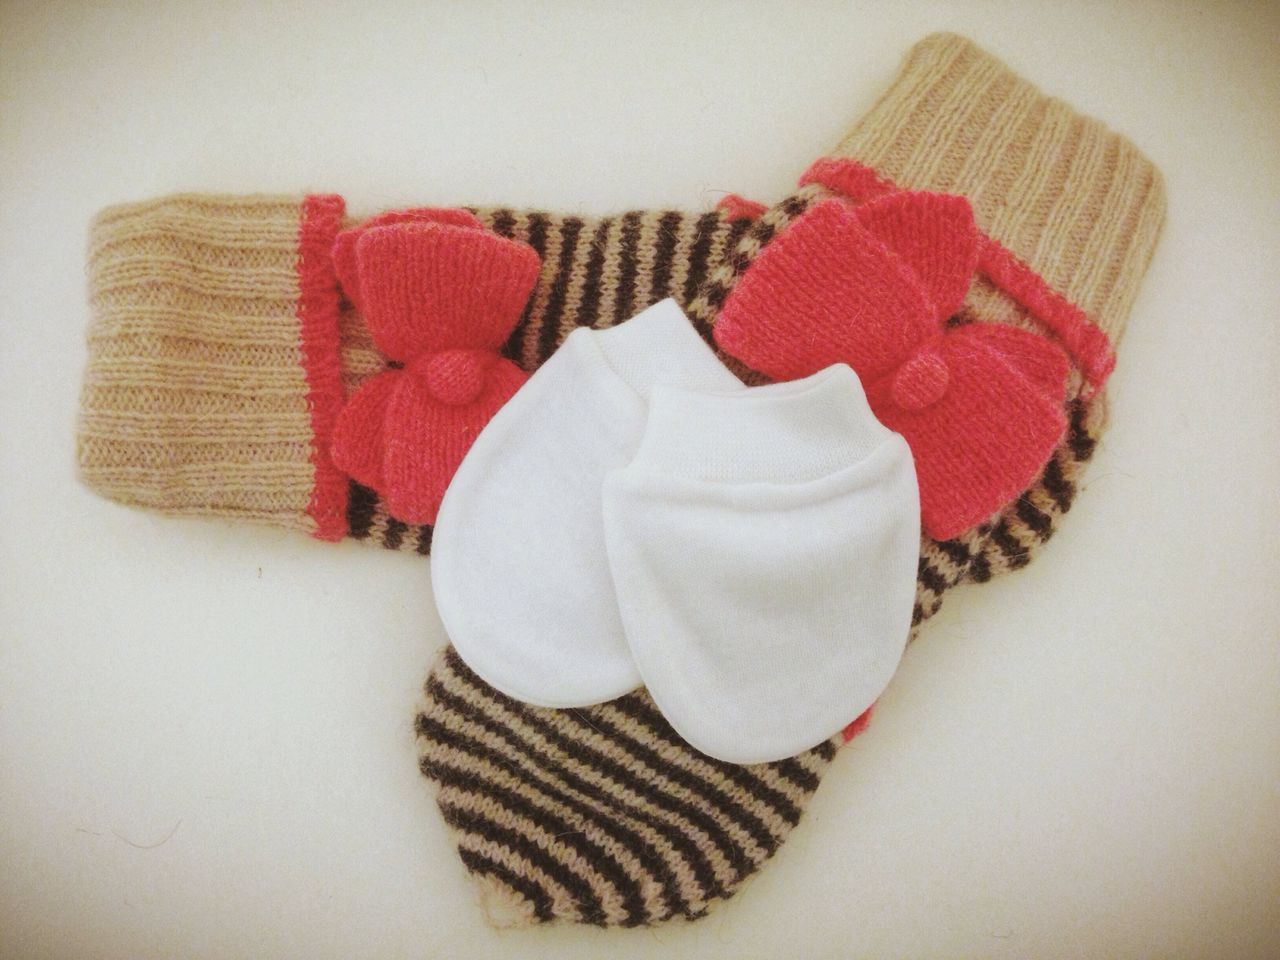 Close-up of socks over white background